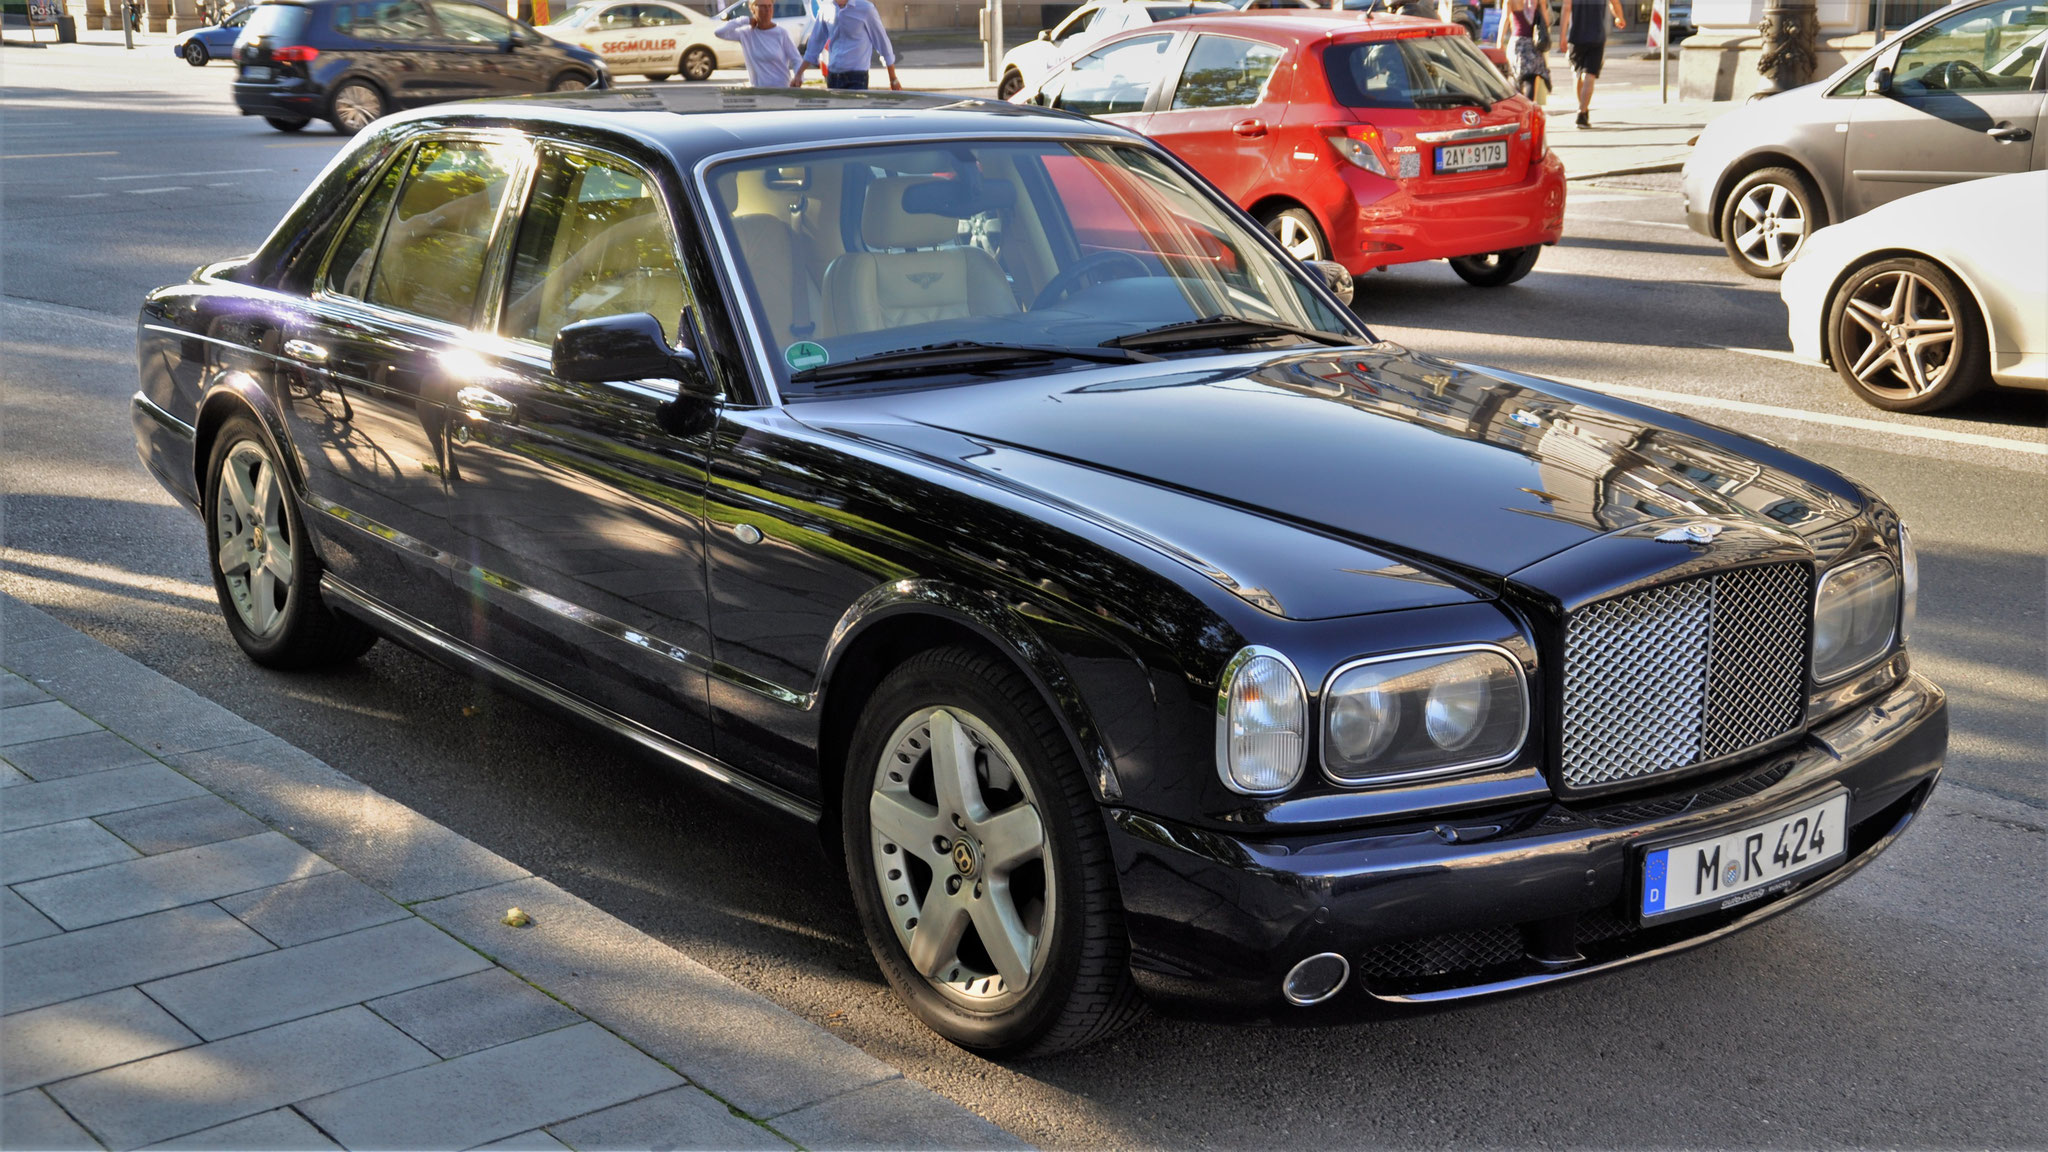 Bentley Arnage - M-R-424